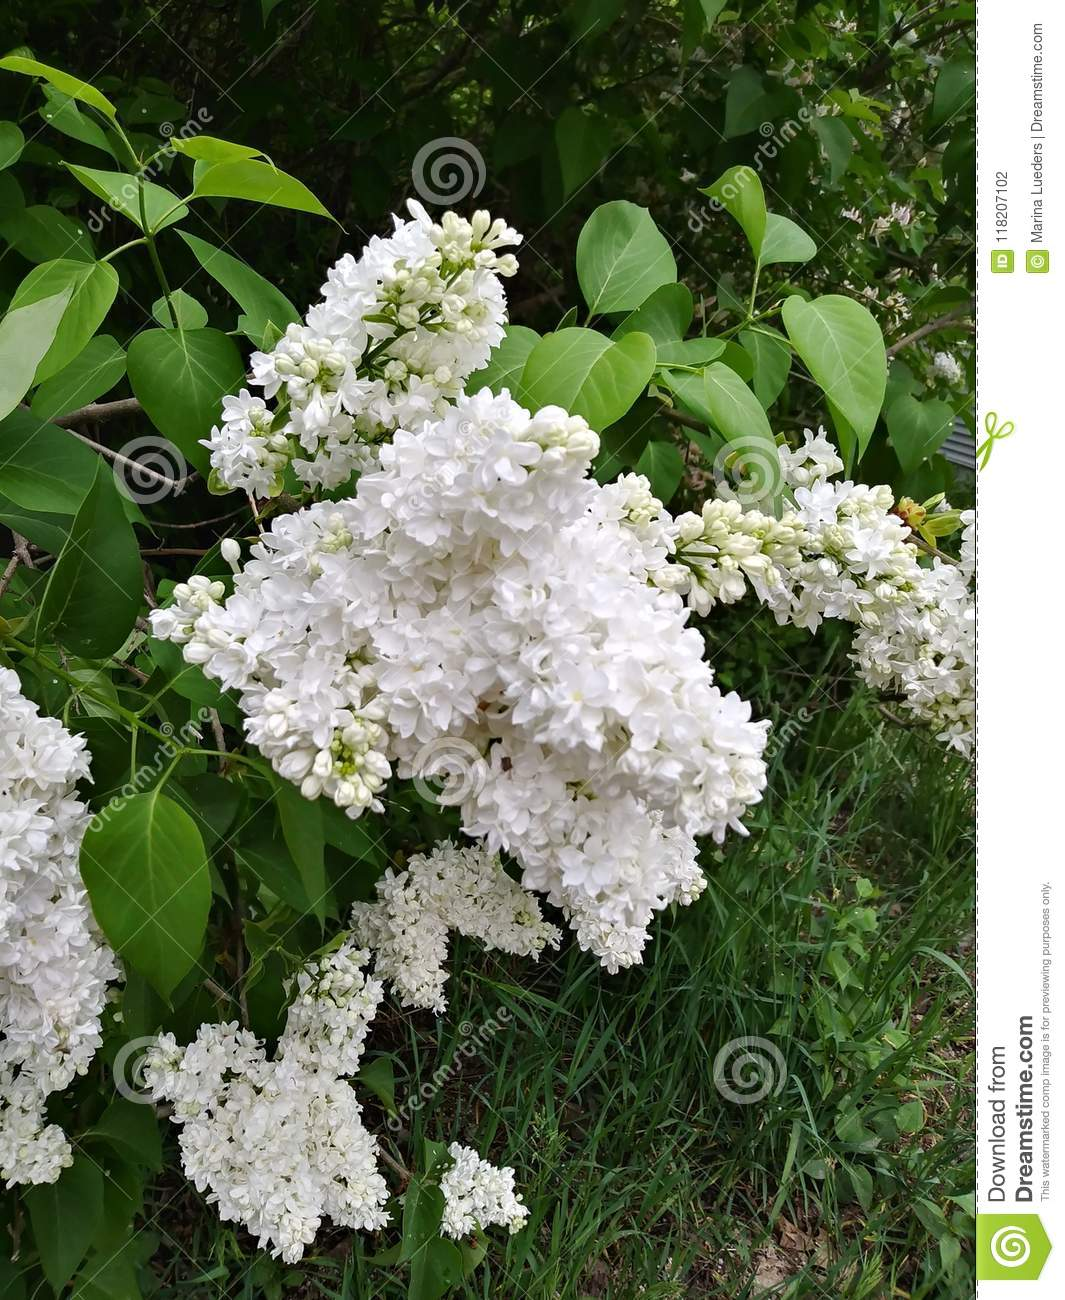 White lilac bush blooming fragrant flowers green leaves stock photo white lilac bush blooming fragrant flowers green leaves mightylinksfo